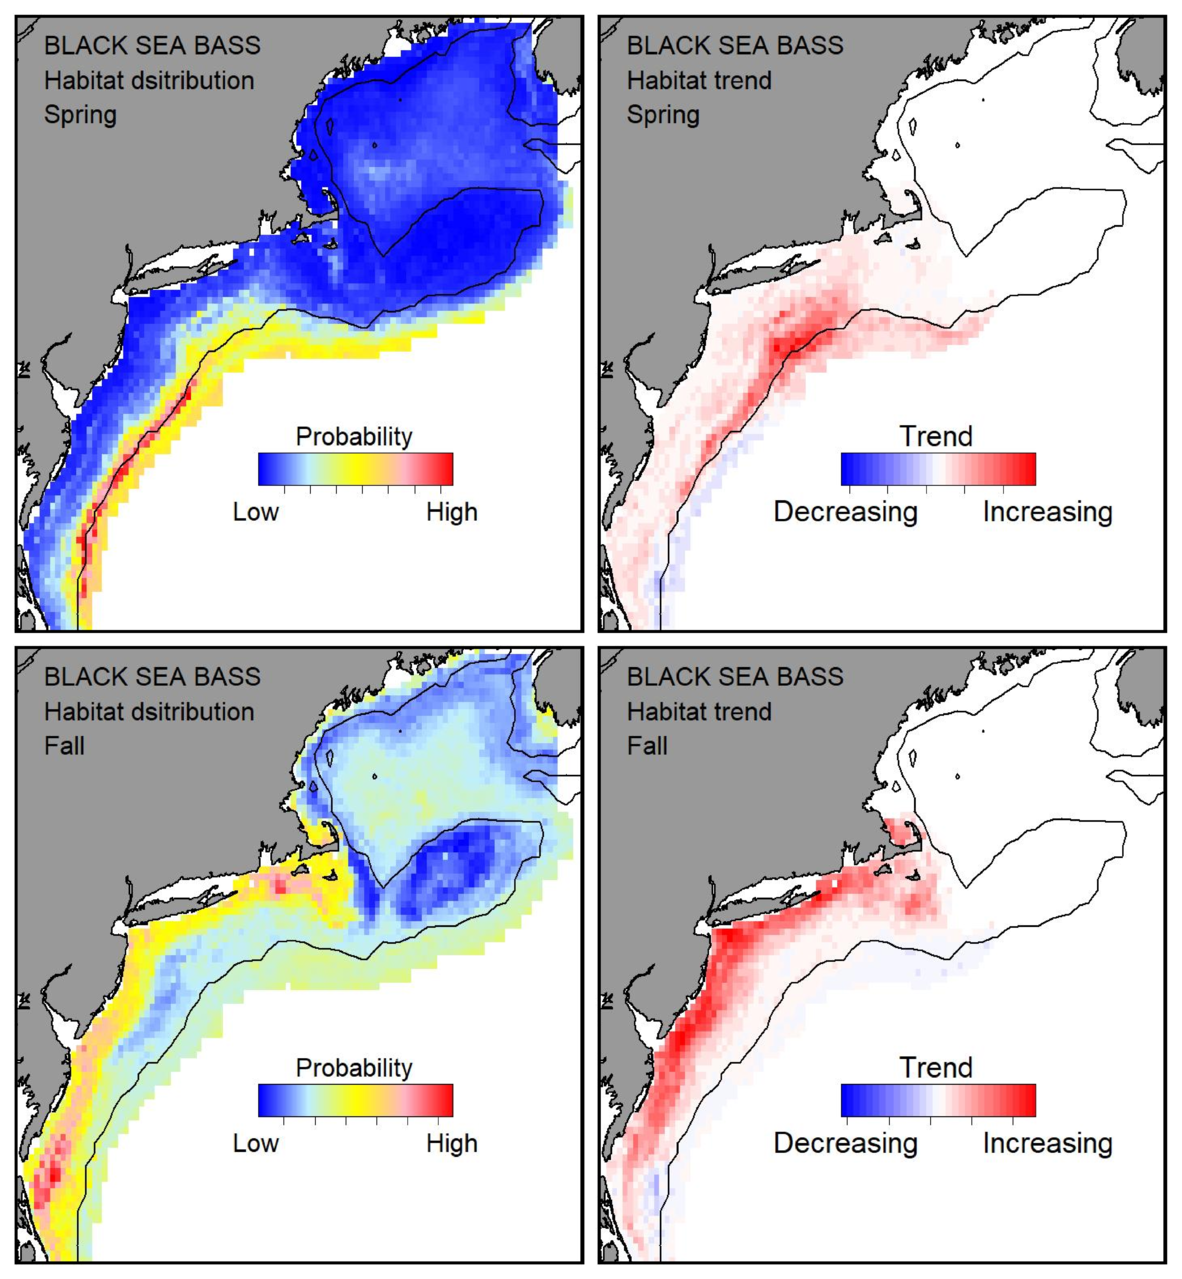 Probable habitat distribution for black sea bass showing the highest concentration and increasing trend in the Gulf of Maine during the spring. Bottom row: Probable habitat distribution for black sea bass showing the highest concentration and increasing trend in the Gulf of Maine during the fall.